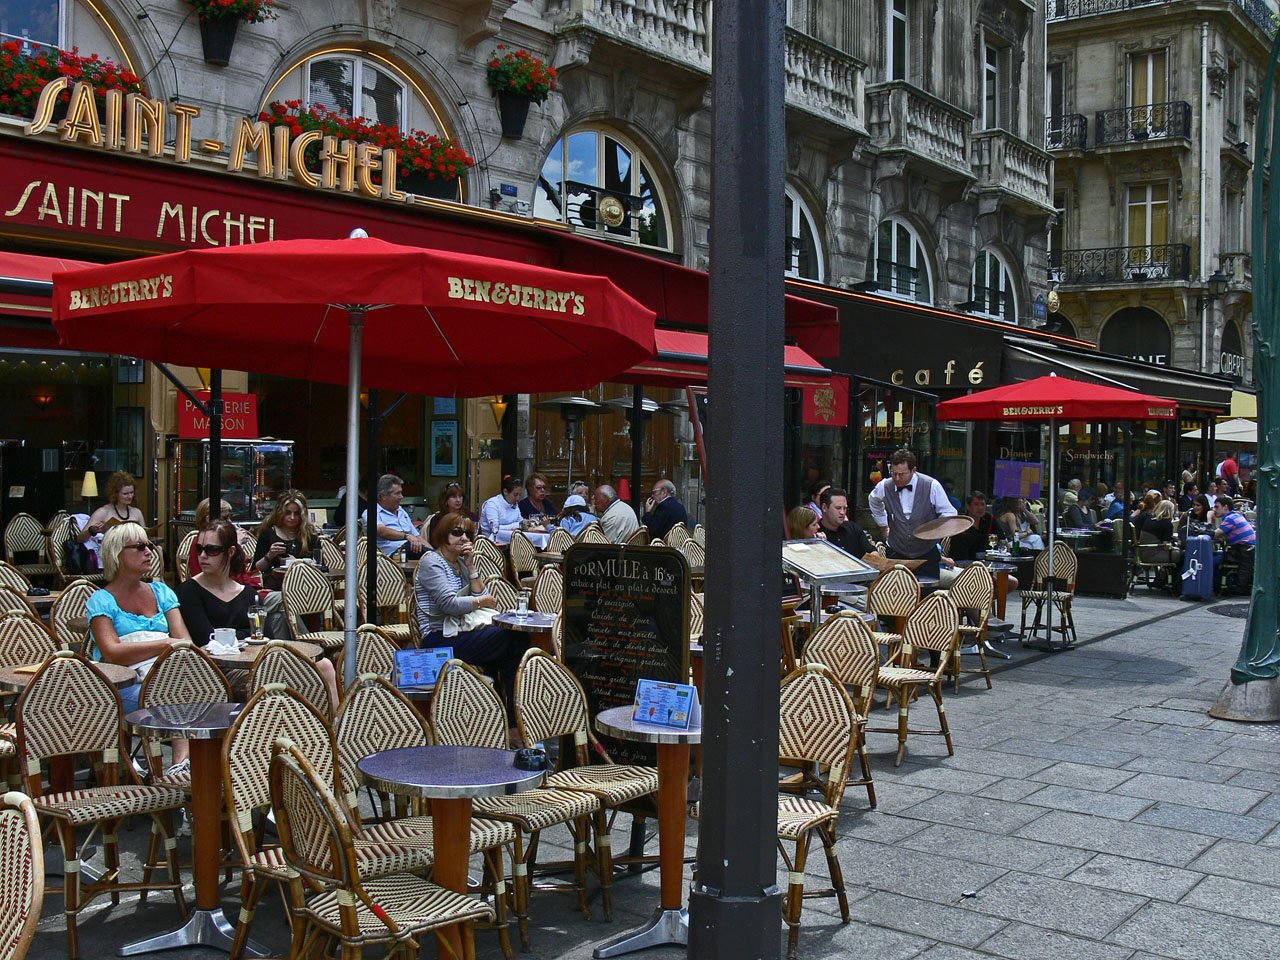 A little bit of home at a Paris Cafe, France